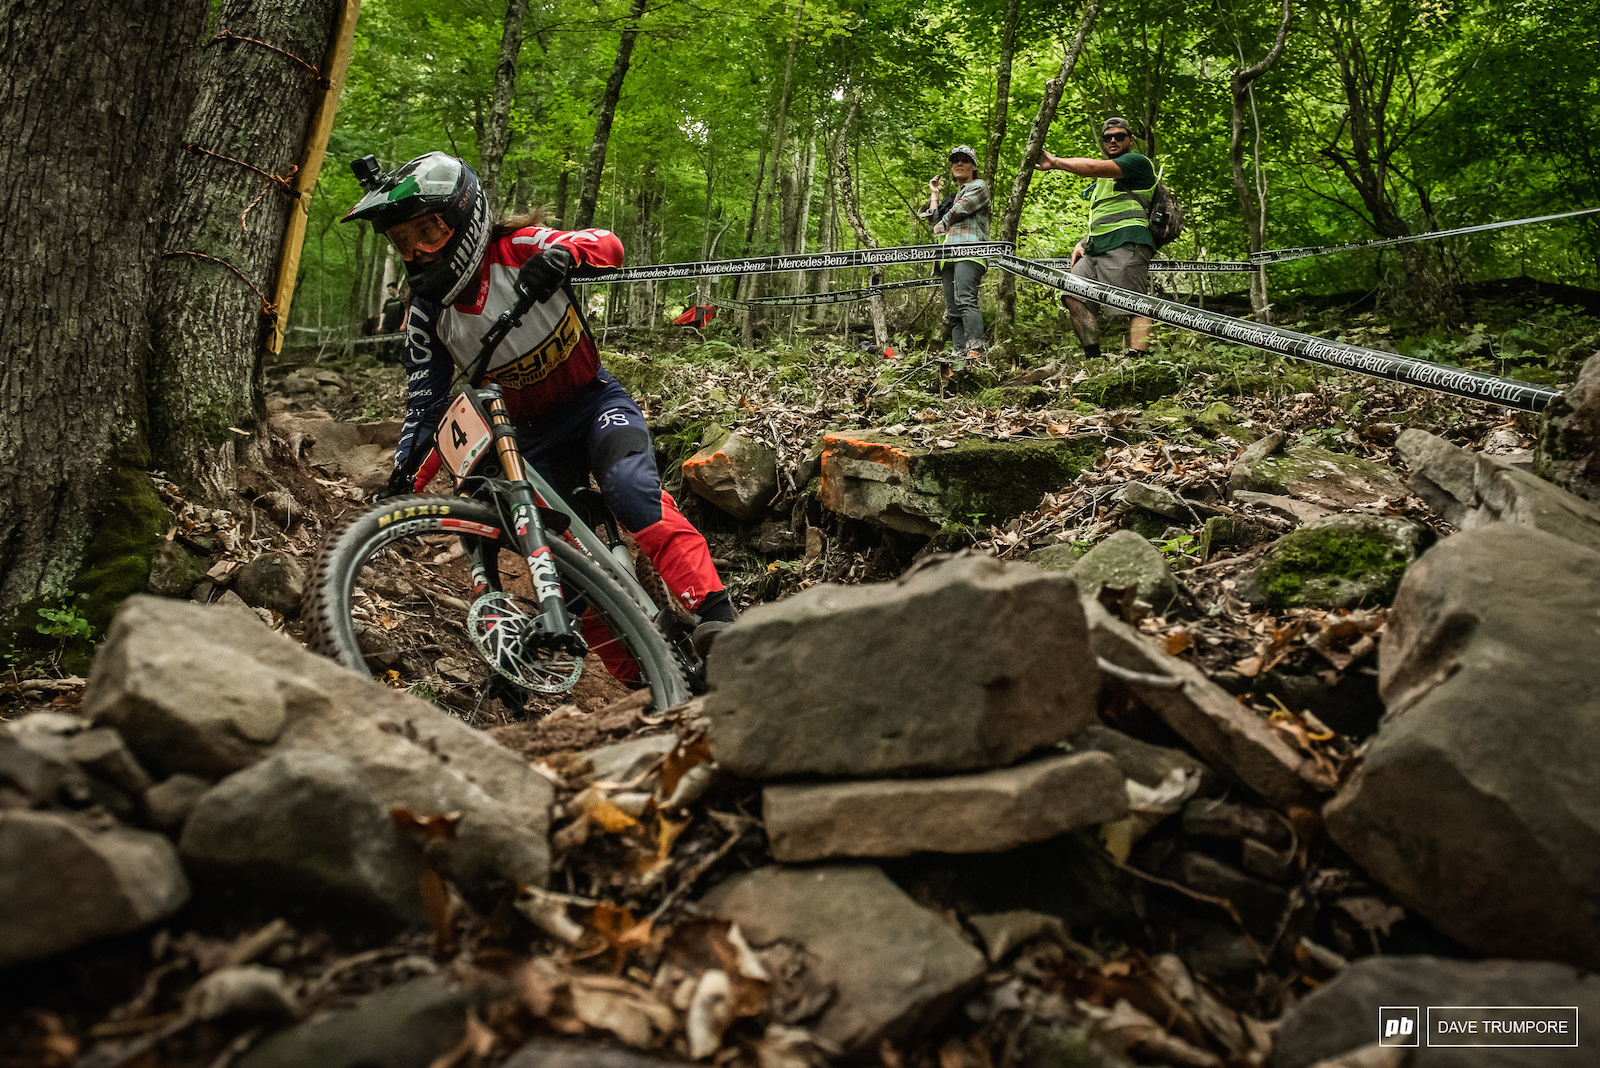 Vero Widmann about half way through the the massive rock garden that makes up most of the lower track